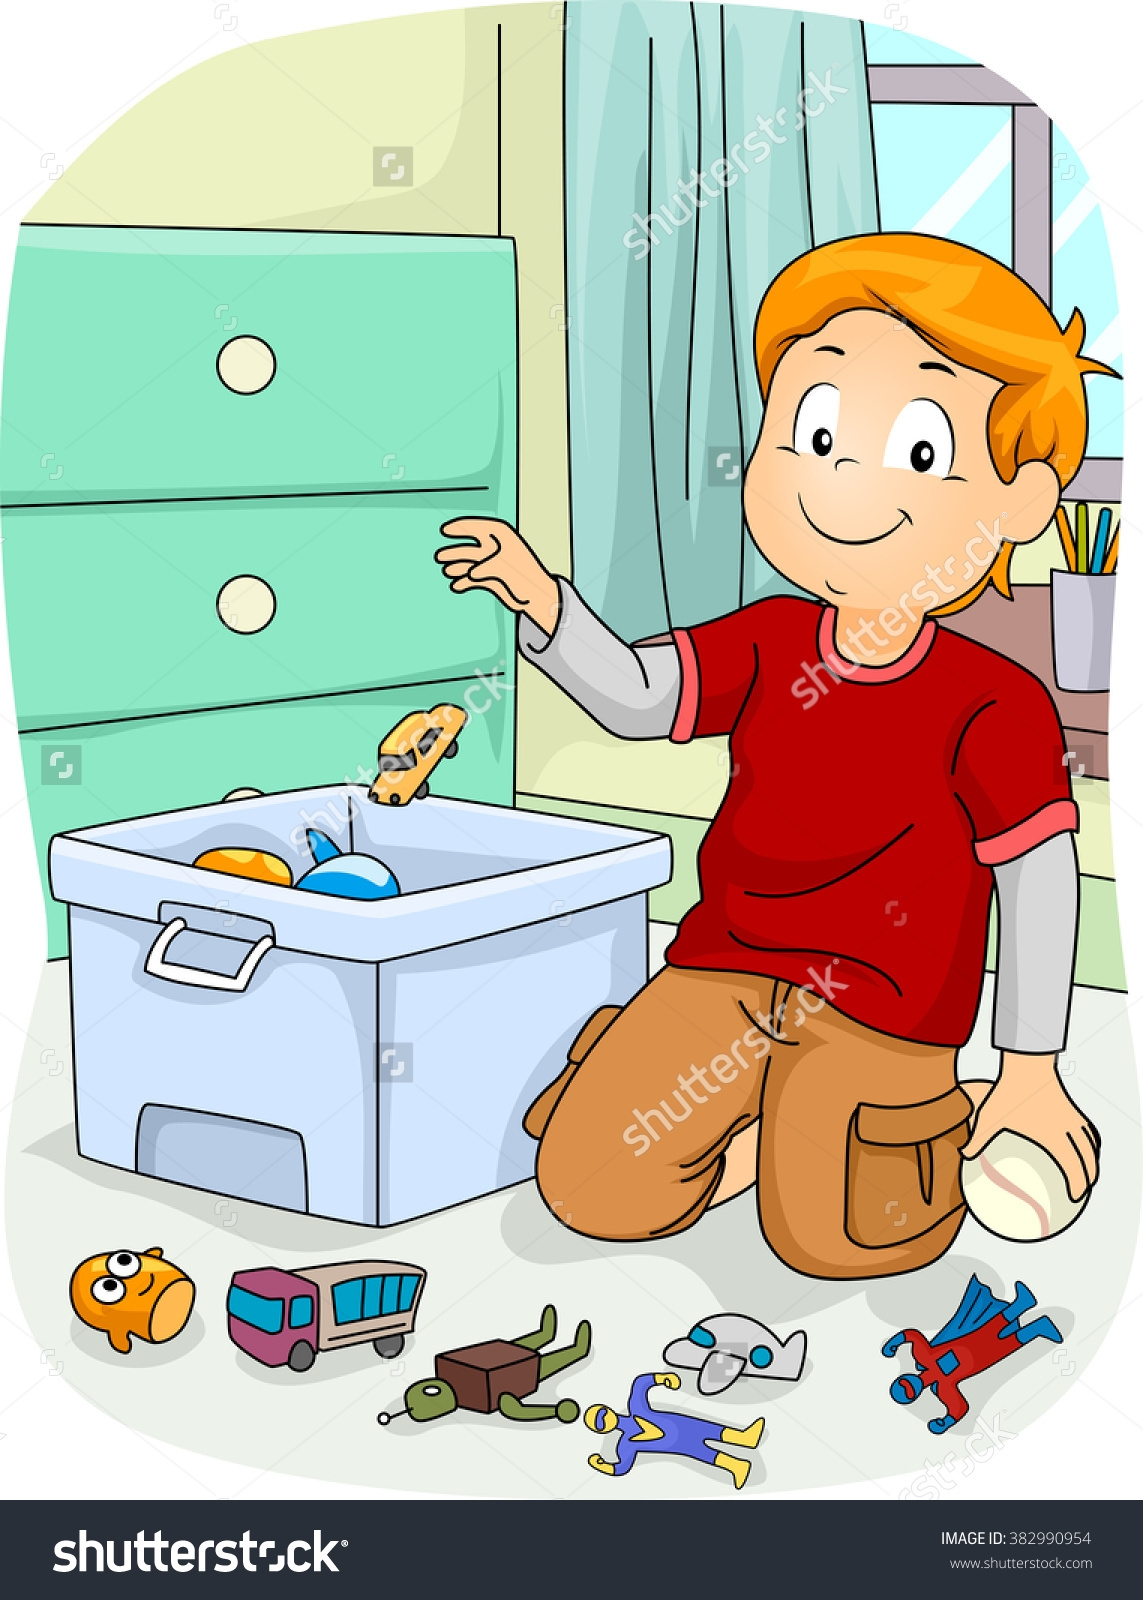 Clean up toys clipart Best of boy picking up toys clipart Clipground.